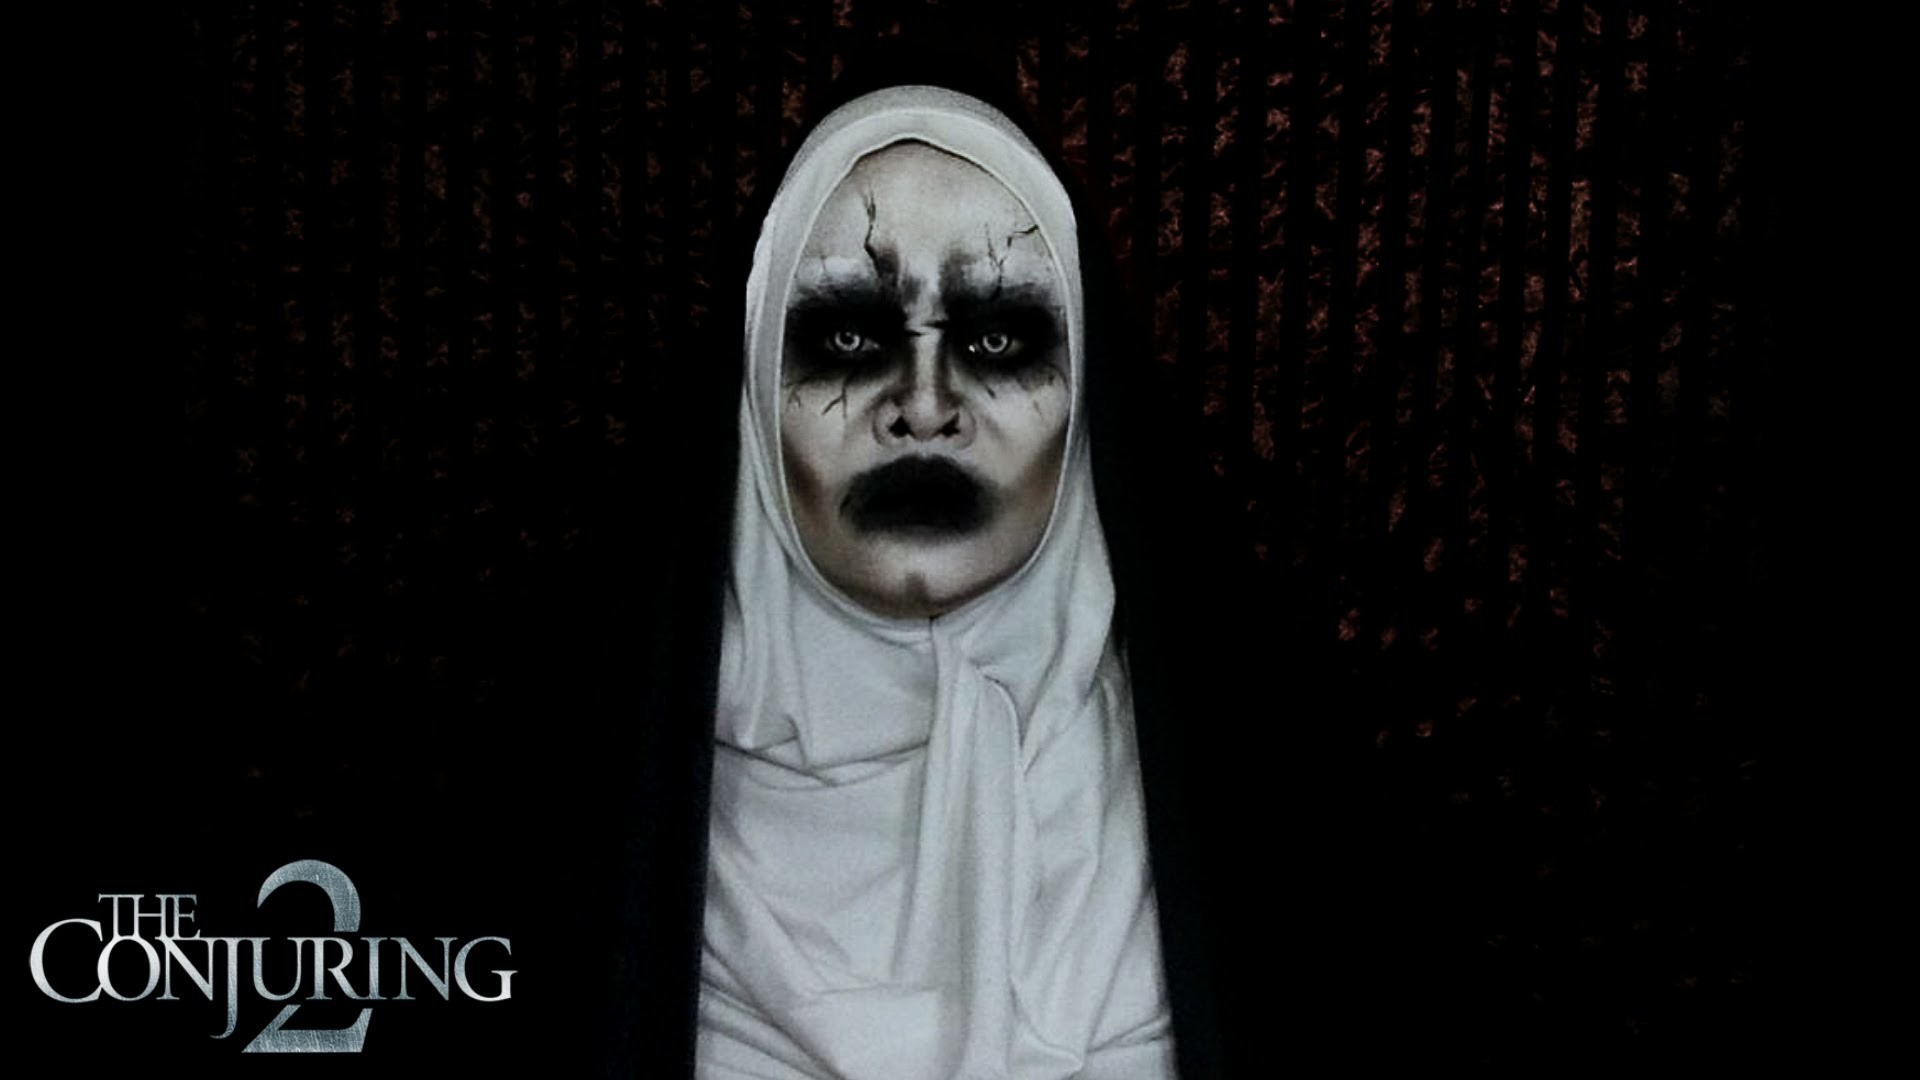 conjuring 2 movie free download hd